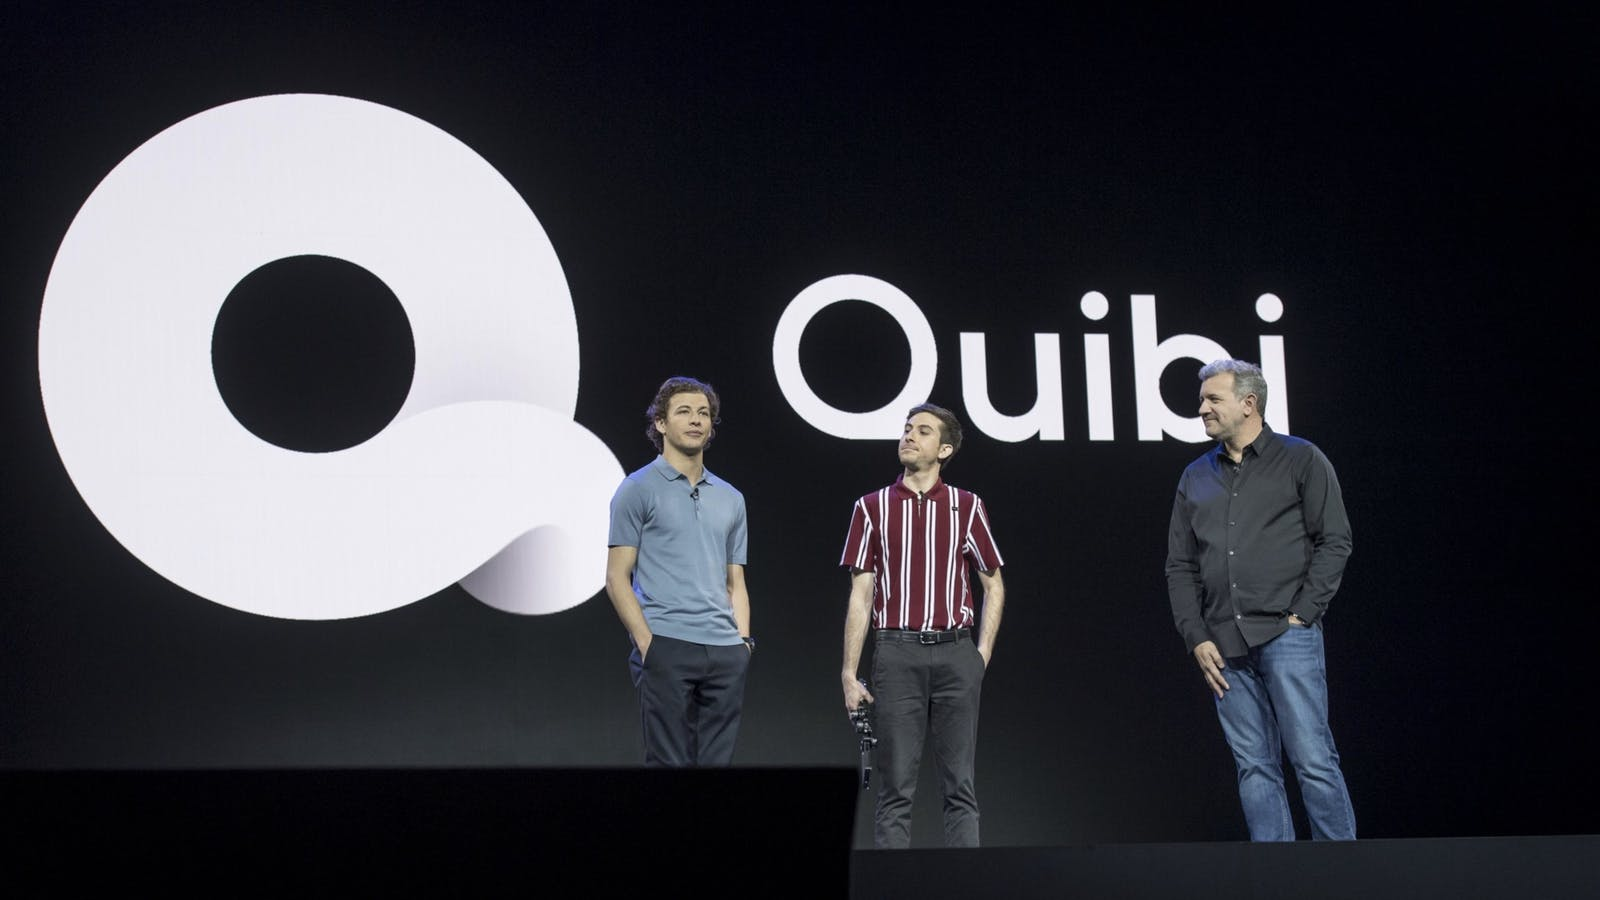 Actor Tye Sheridan, from left, with filmmaker Zach Wechter and Quibi chief product officer Tom Conrad during a keynote at CES in January. Photo by Bloomberg